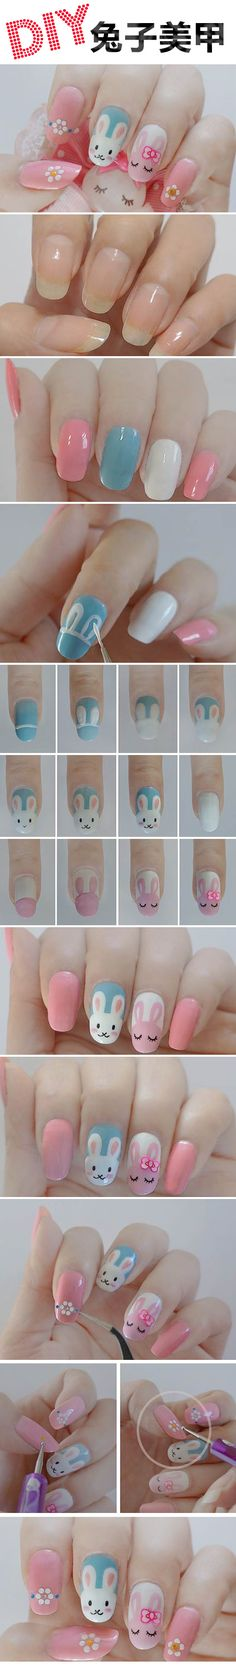 15 Amazing And Useful Nails Tutorials, DIY Cute Rabbit Nail Design